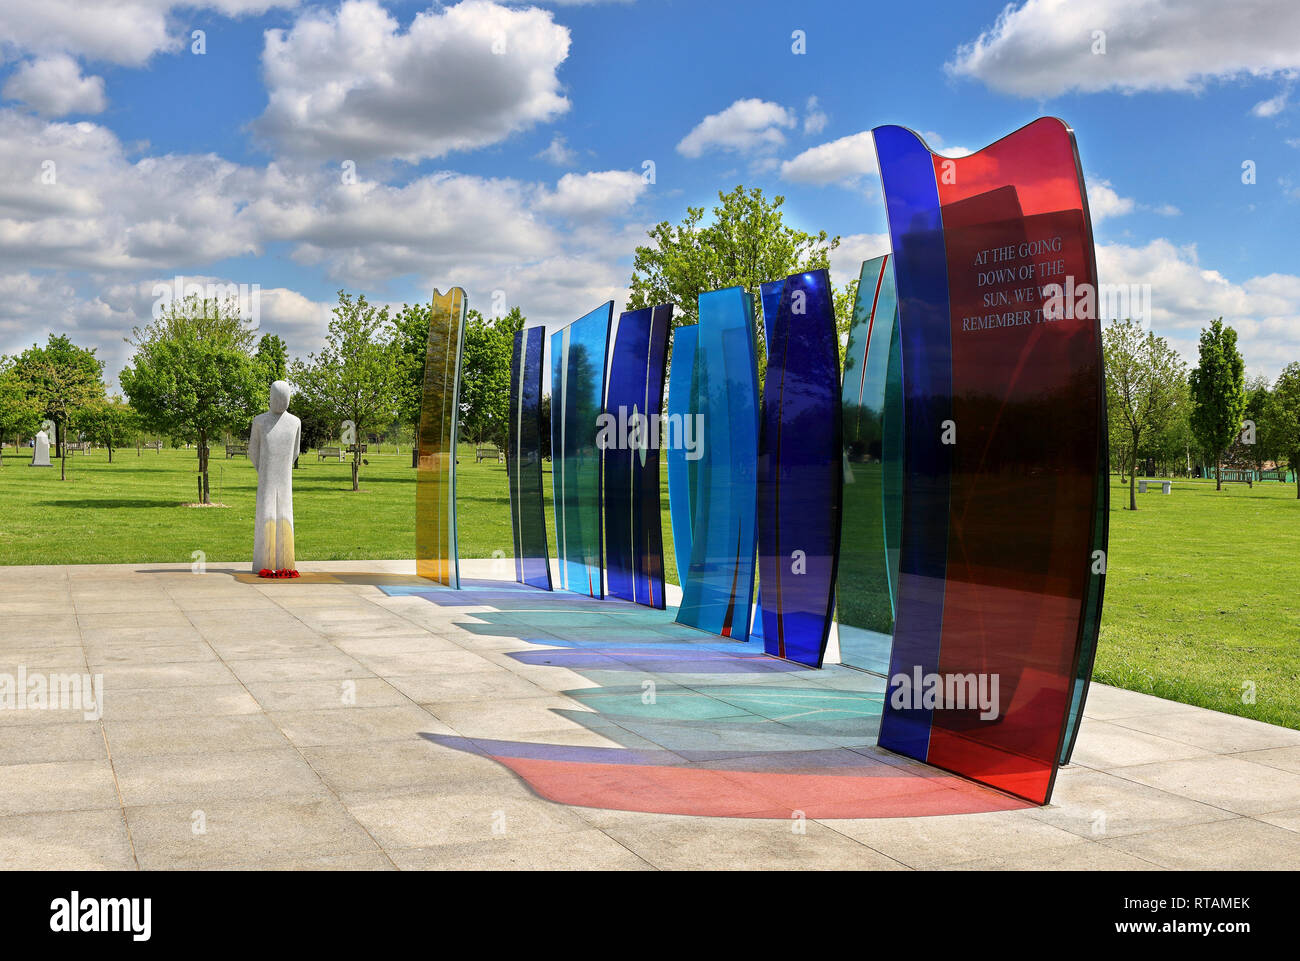 Naval services Memorial at the National Memorial Arboretum Staffordshire - Stock Image